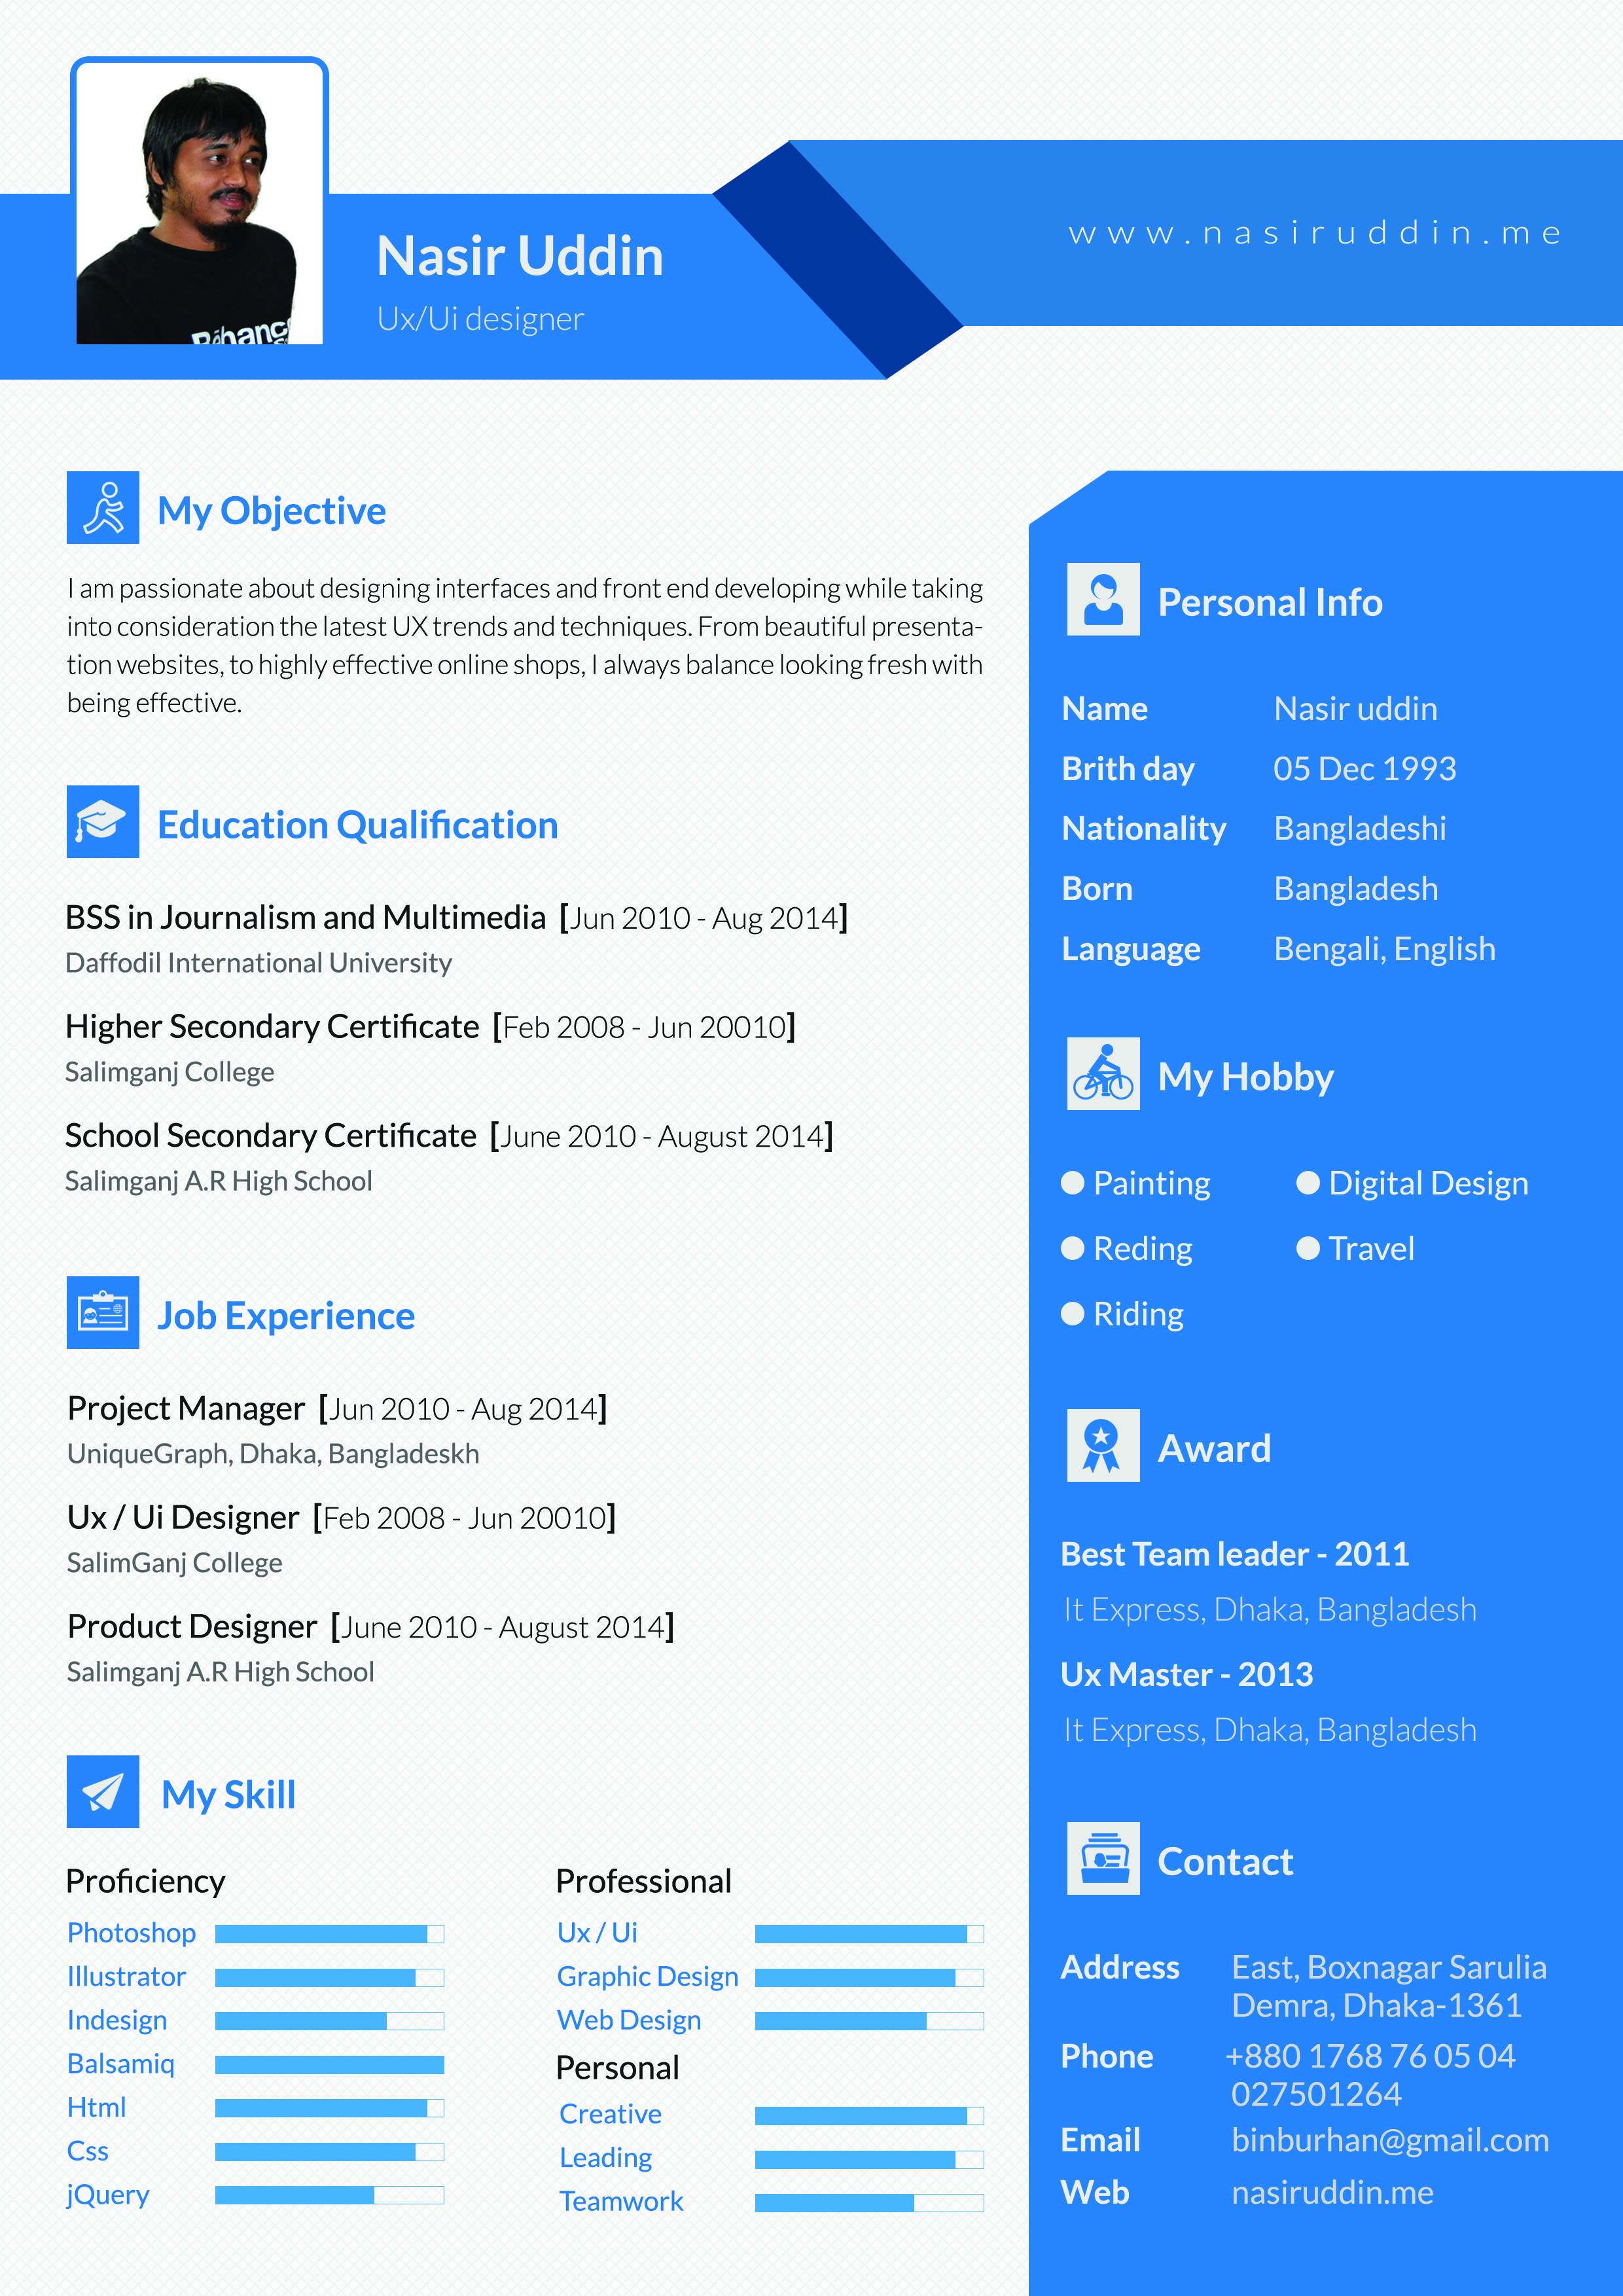 Resume Nabeel Wiring Library Air York Diagrams Conditioners Sn Nggm094663 Example 10 I Will Design Awesome Cv For You 5https